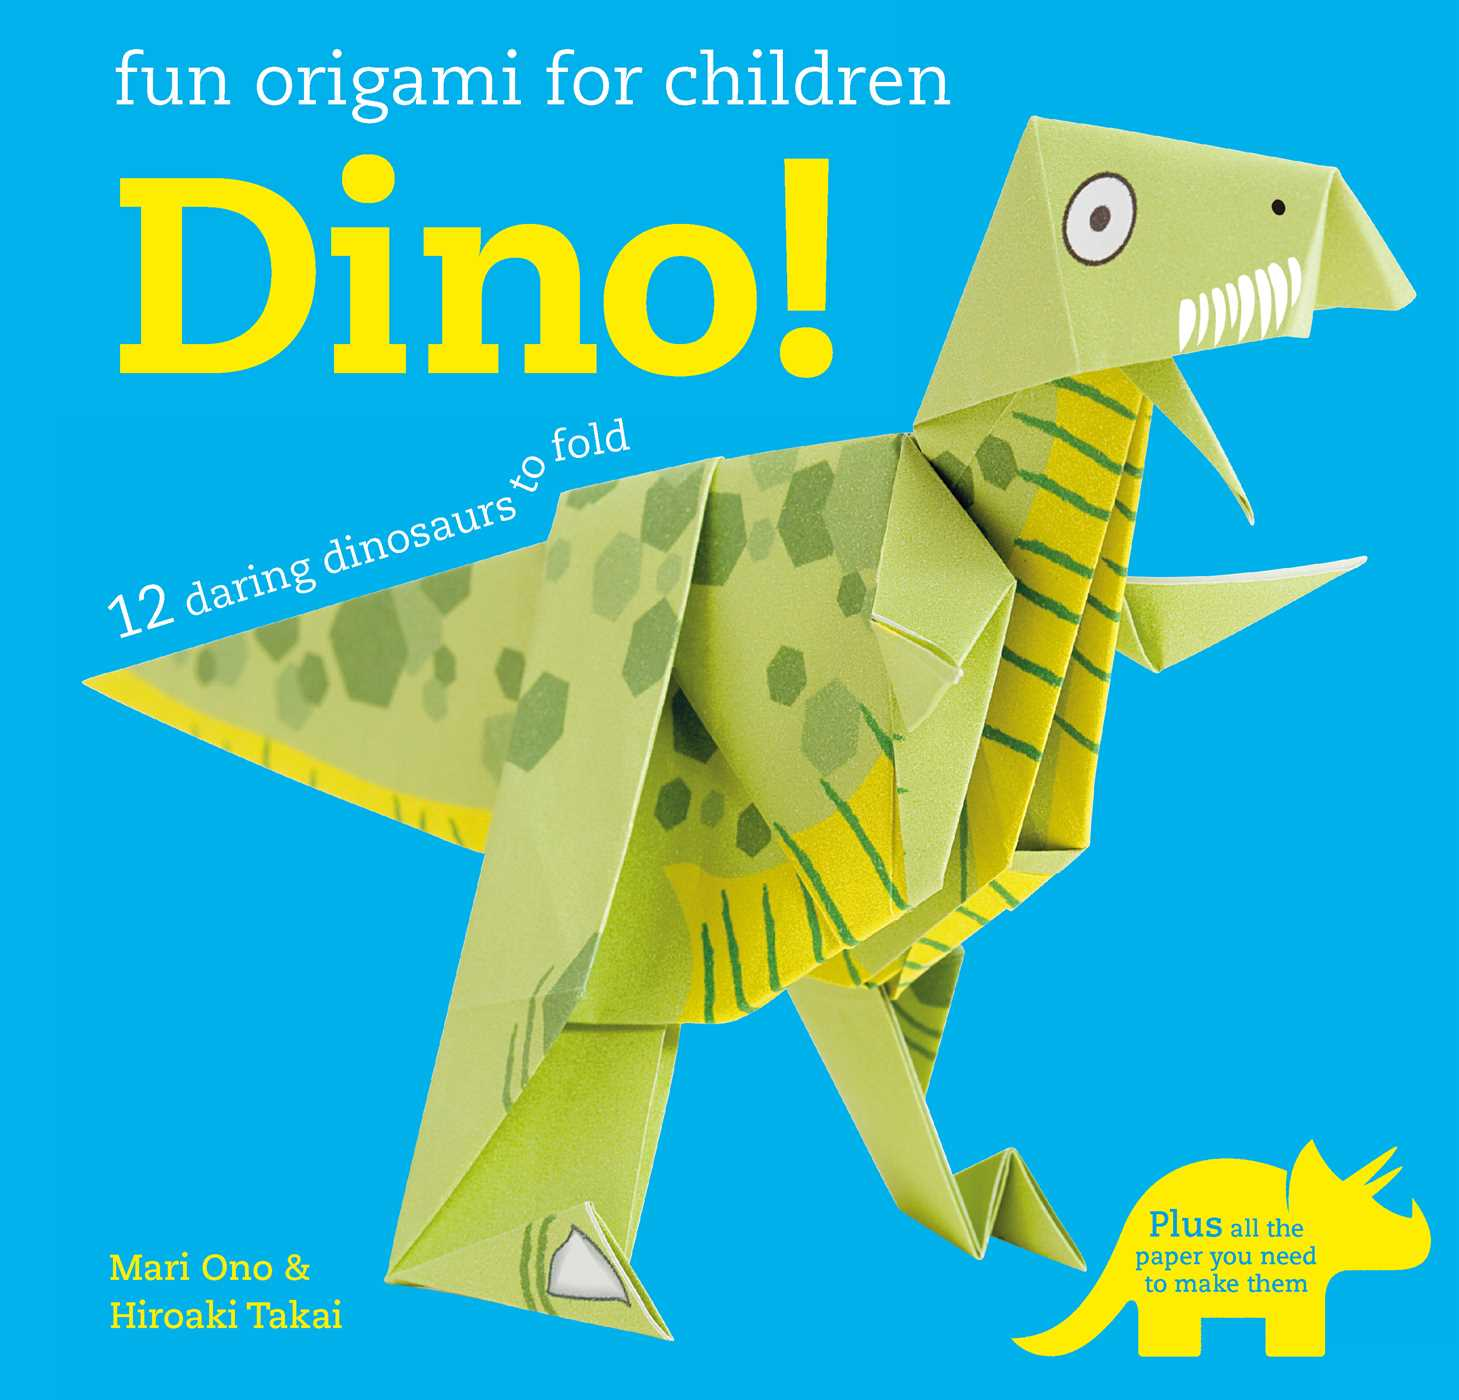 Fun Origami for Children: Dino! | Book by Mari Ono ... - photo#19